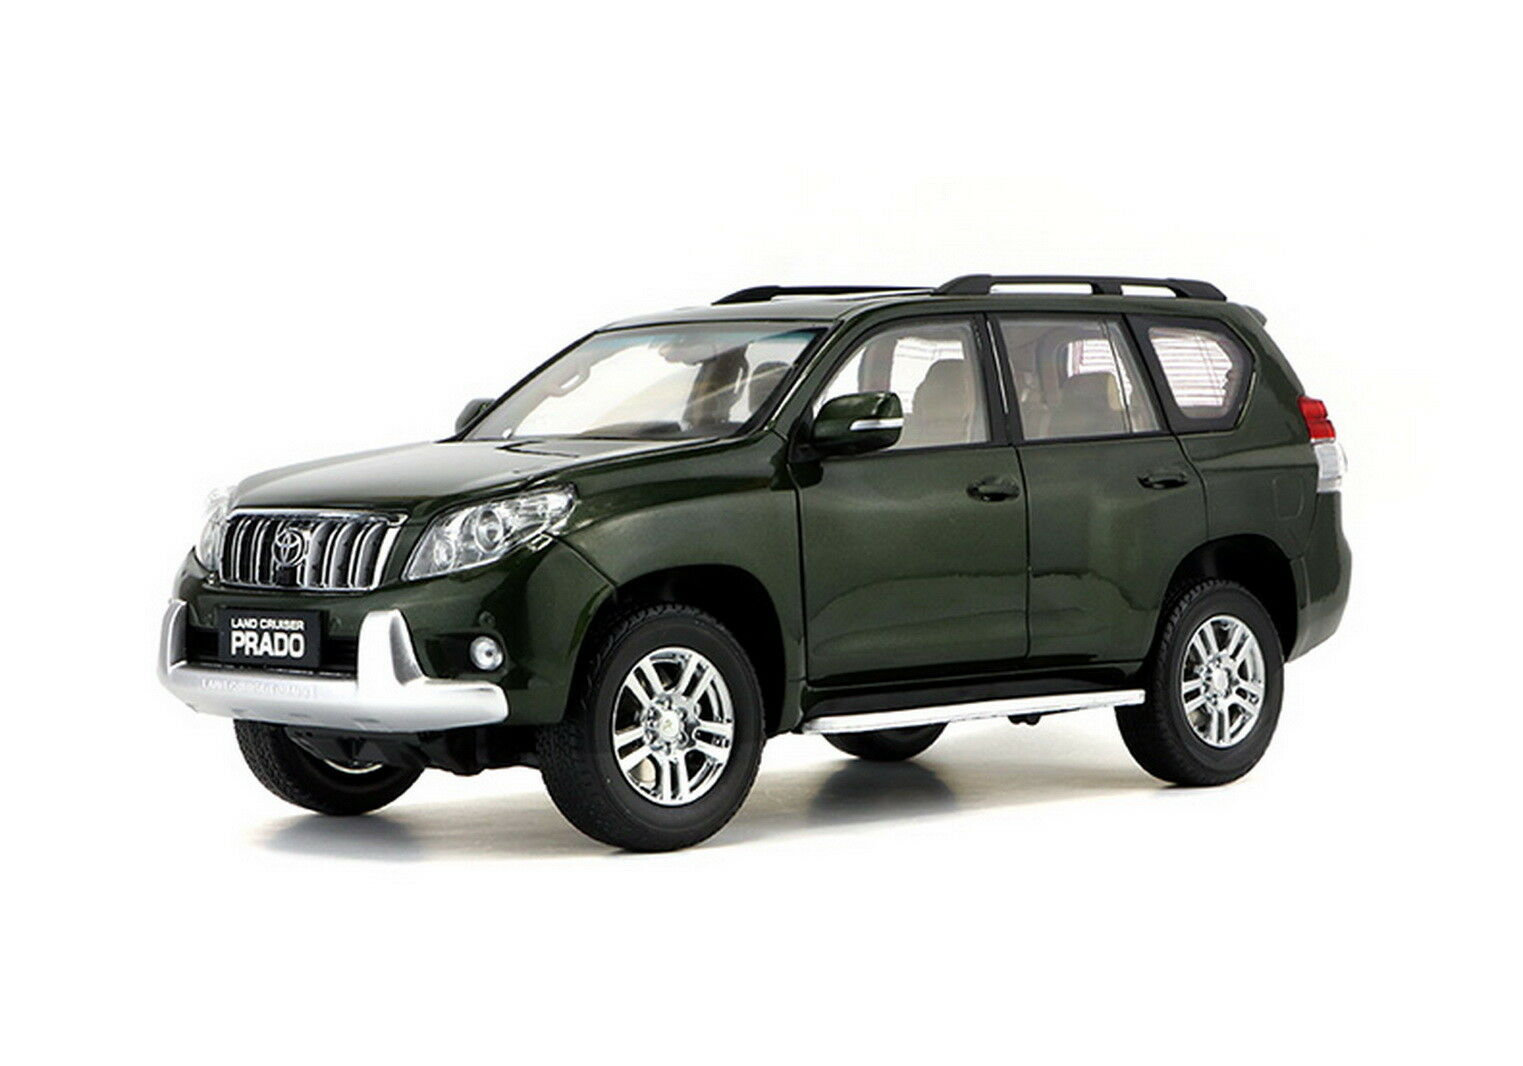 1/18 Scale Toyota Land Cruiser Prado verde Without Decal Diecast Car Model